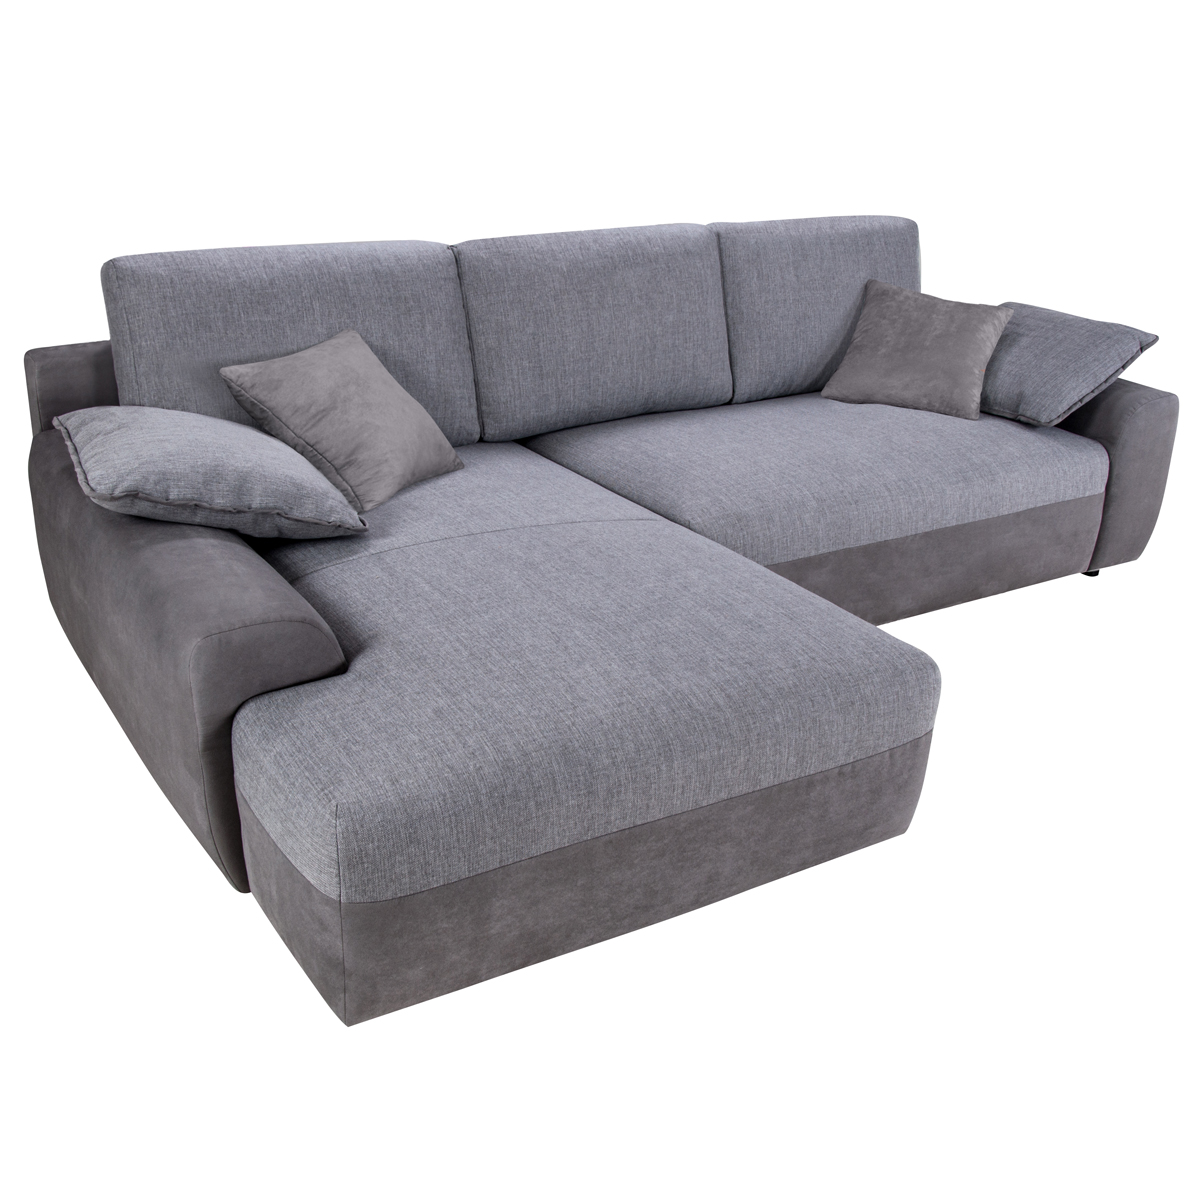 wohnlandschaft hastings grau sofa ecksofa mit bettfunktion polstersofa ebay. Black Bedroom Furniture Sets. Home Design Ideas